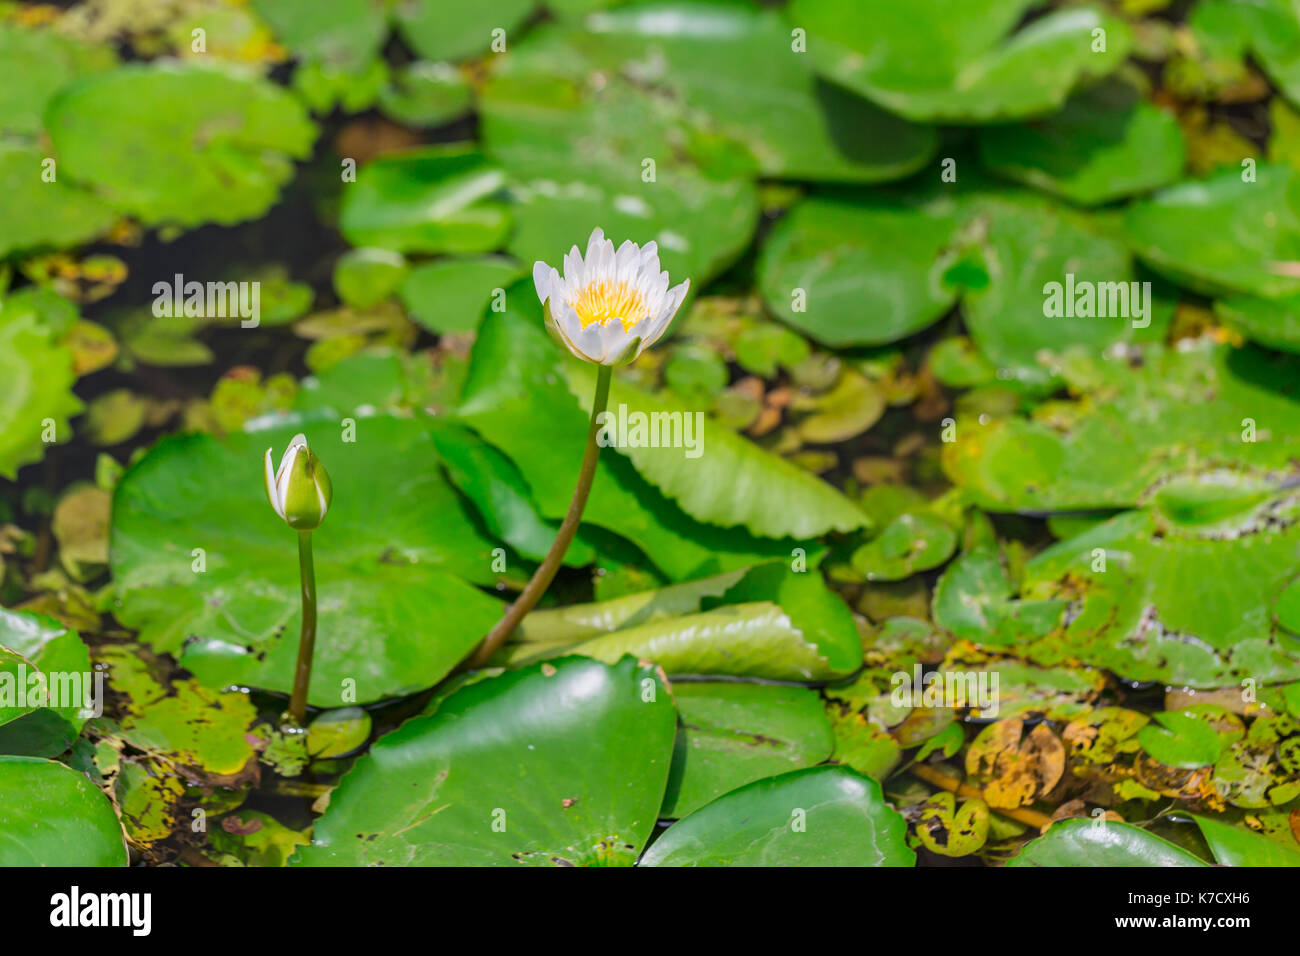 Small White Lotus Water Lily With Cover Of Green Leaf Background In